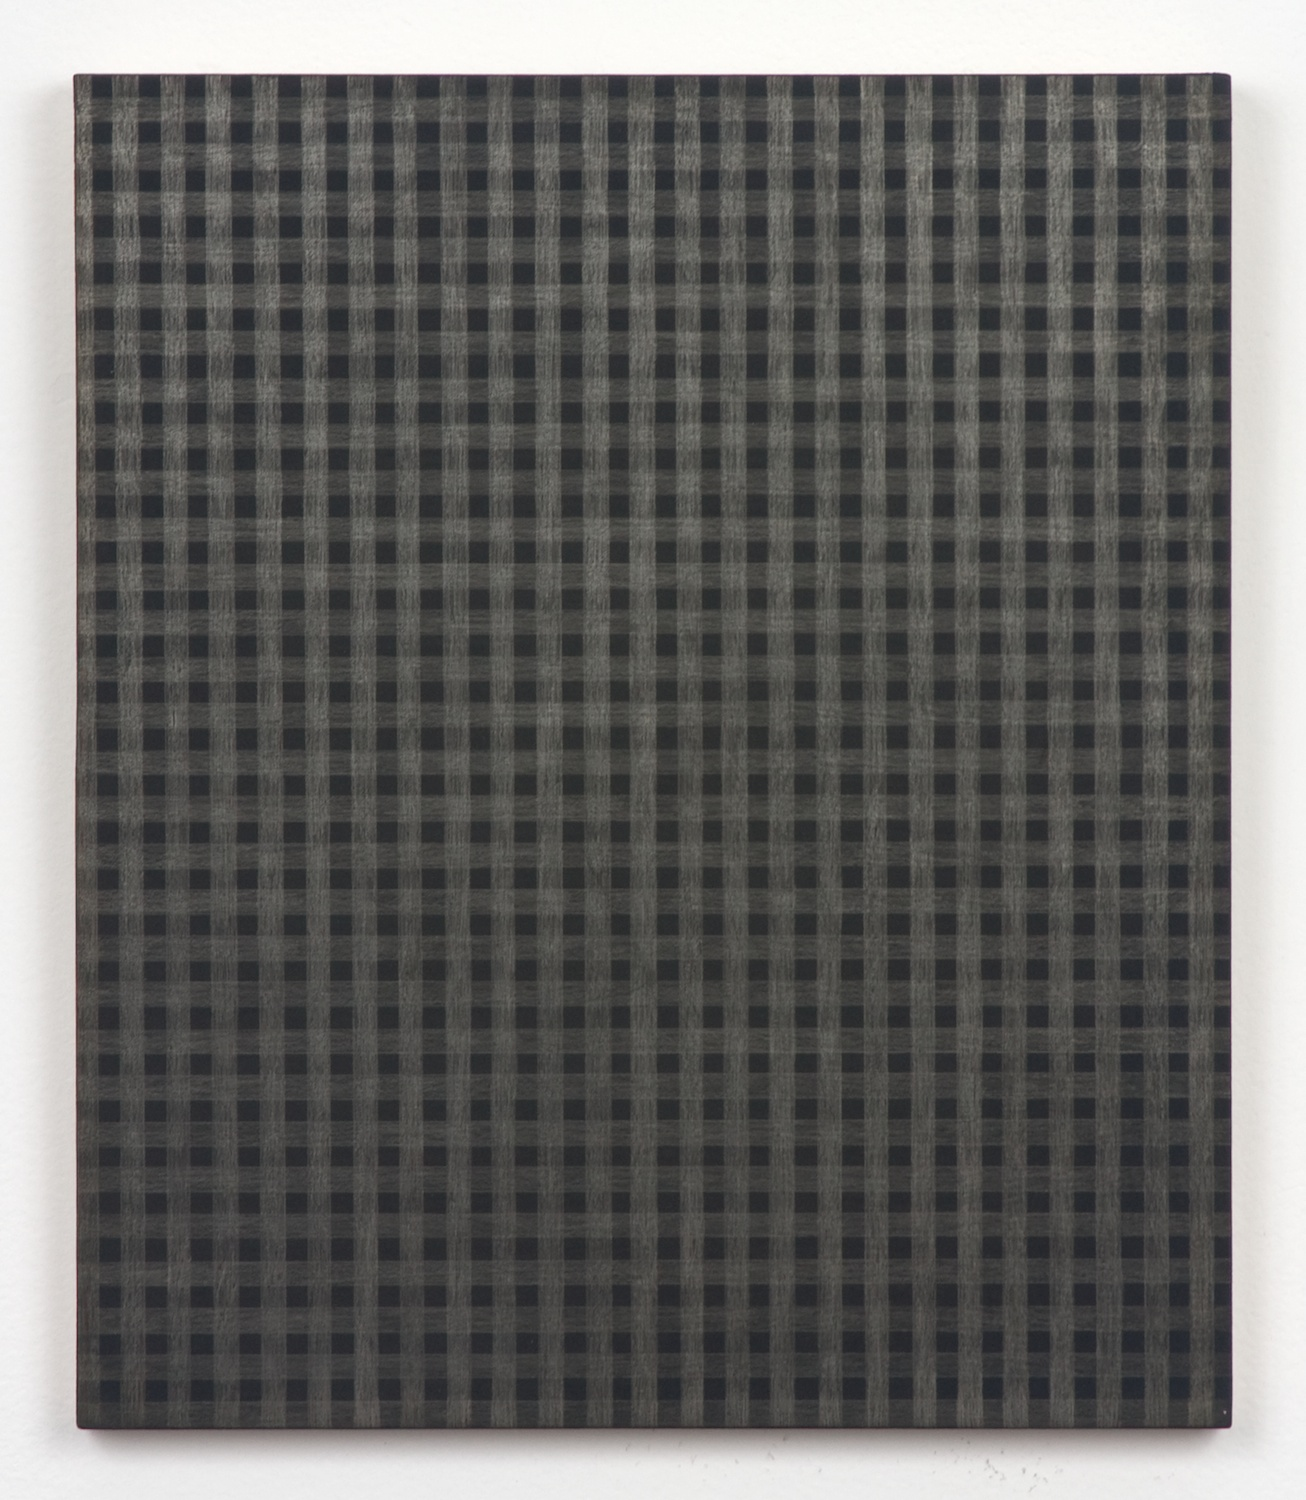 Michelle Grabner  Untitled  2010 Silver and gesso on panel 12h x 10w in MGrab180